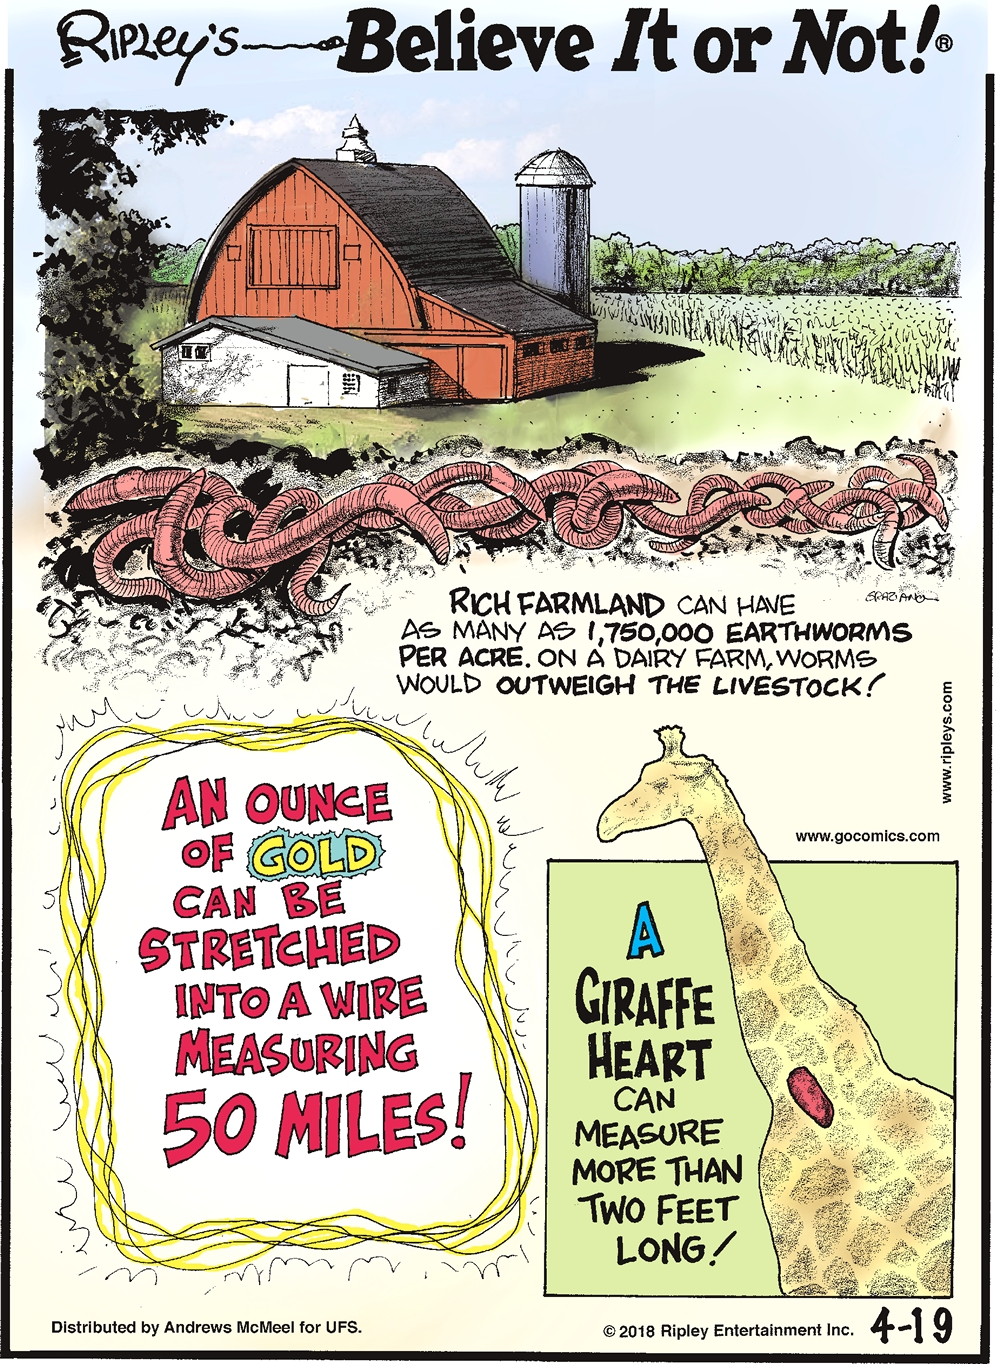 Rich farmland can have as many as 1,750,000 earthworms per acre. On a dairy farm, worms would outweigh the livestock!-------------------- An ounce of gold can be stretched into a wire measuring 50 miles!-------------------- A giraffe heart can measure more than two feet long!